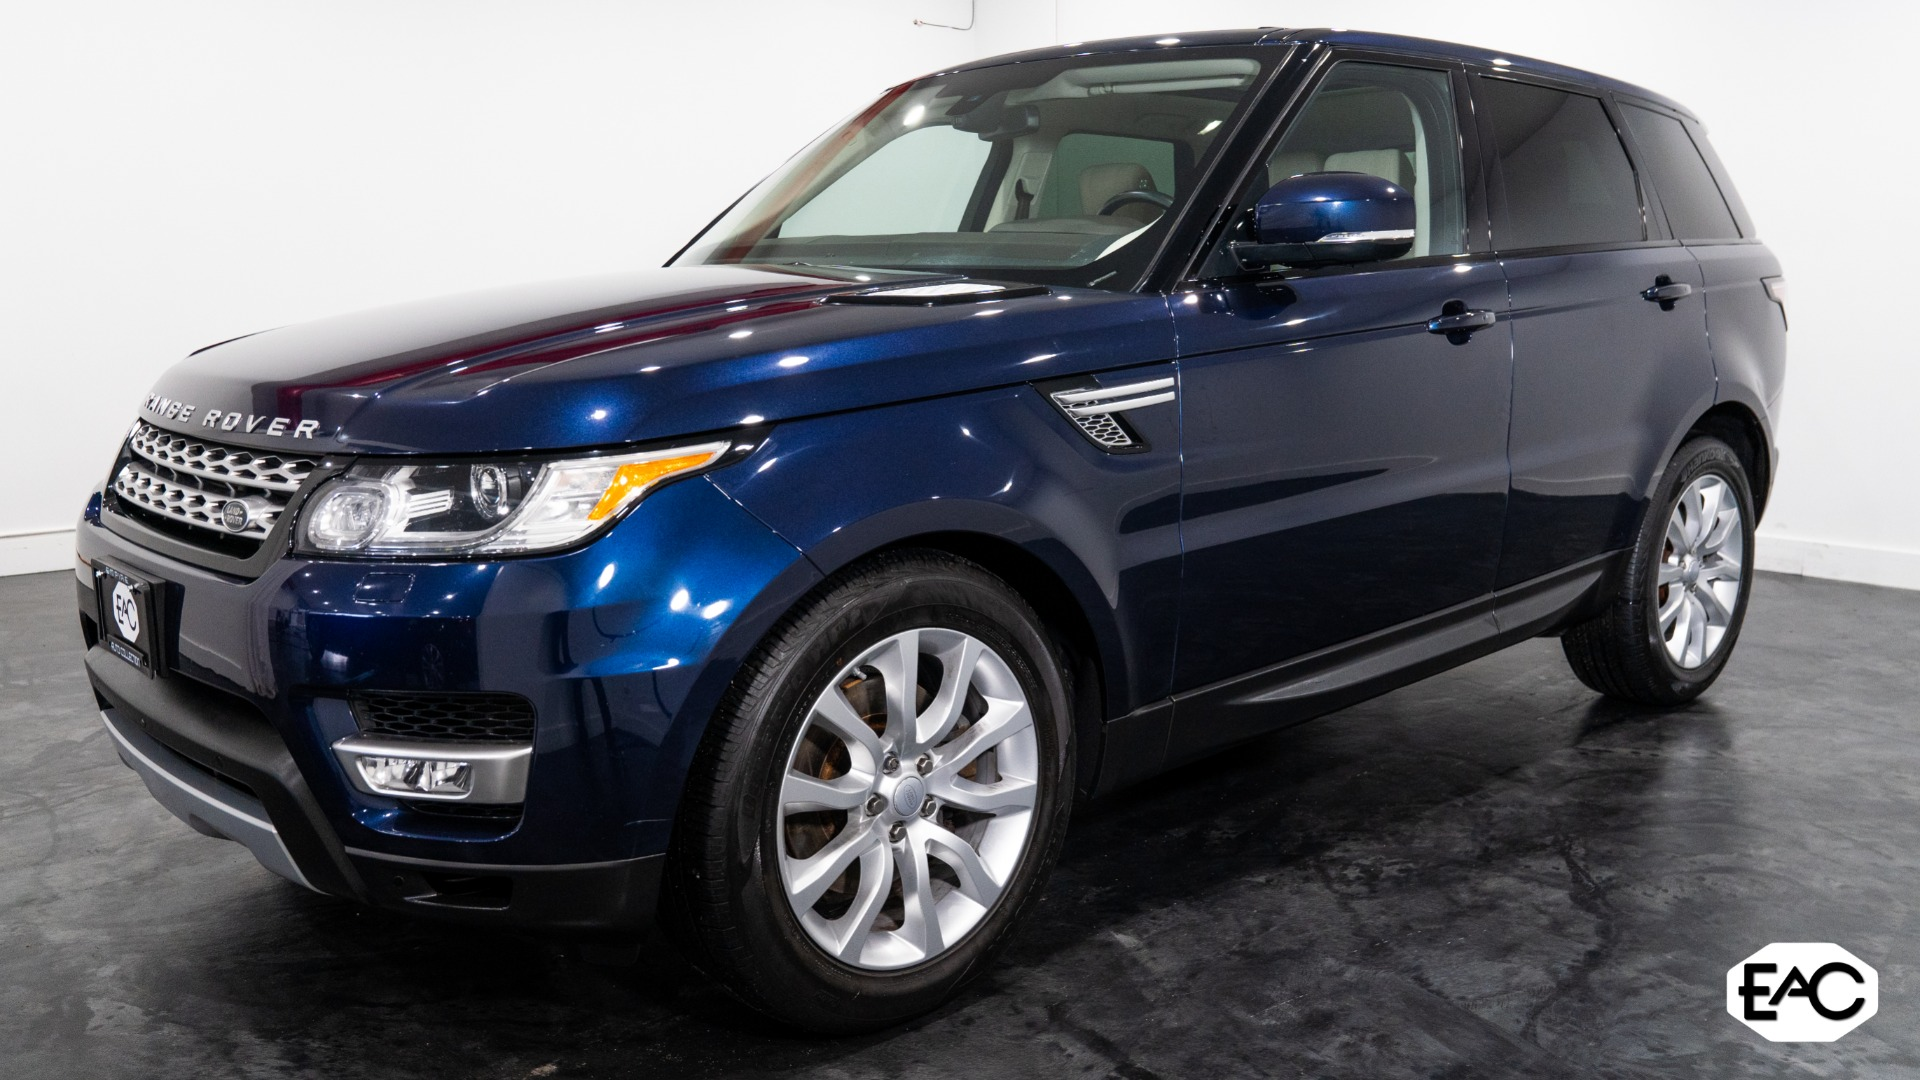 Used 2016 Land Rover Range Rover Sport HSE for sale $31,495 at Empire Auto Collection in Warren MI 48091 1